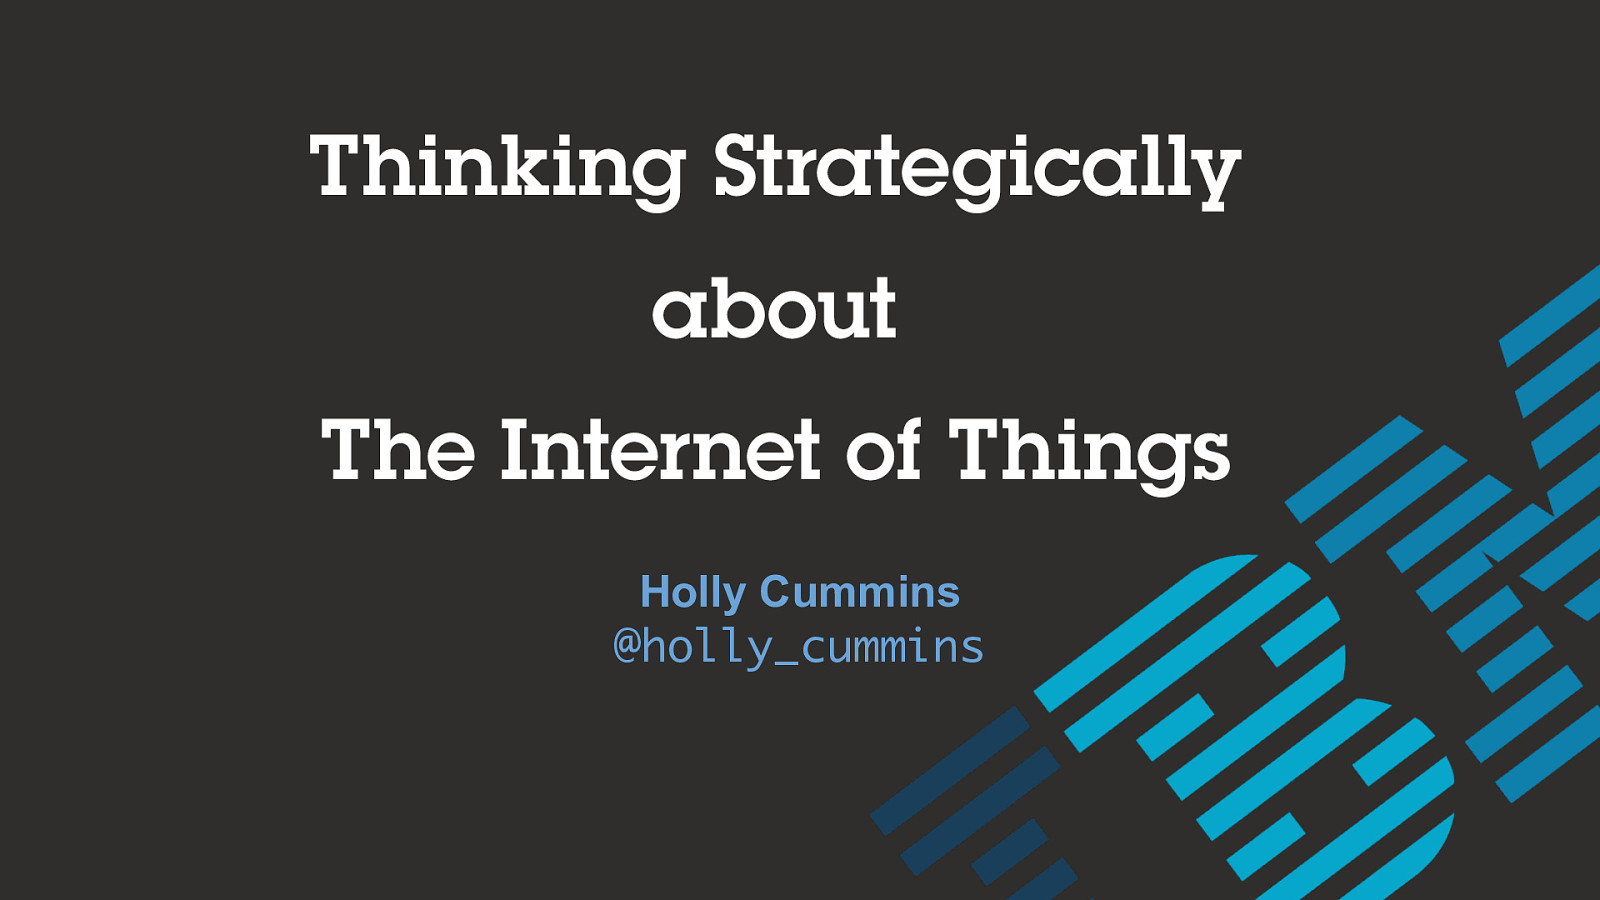 Thinking Strategically About IoT